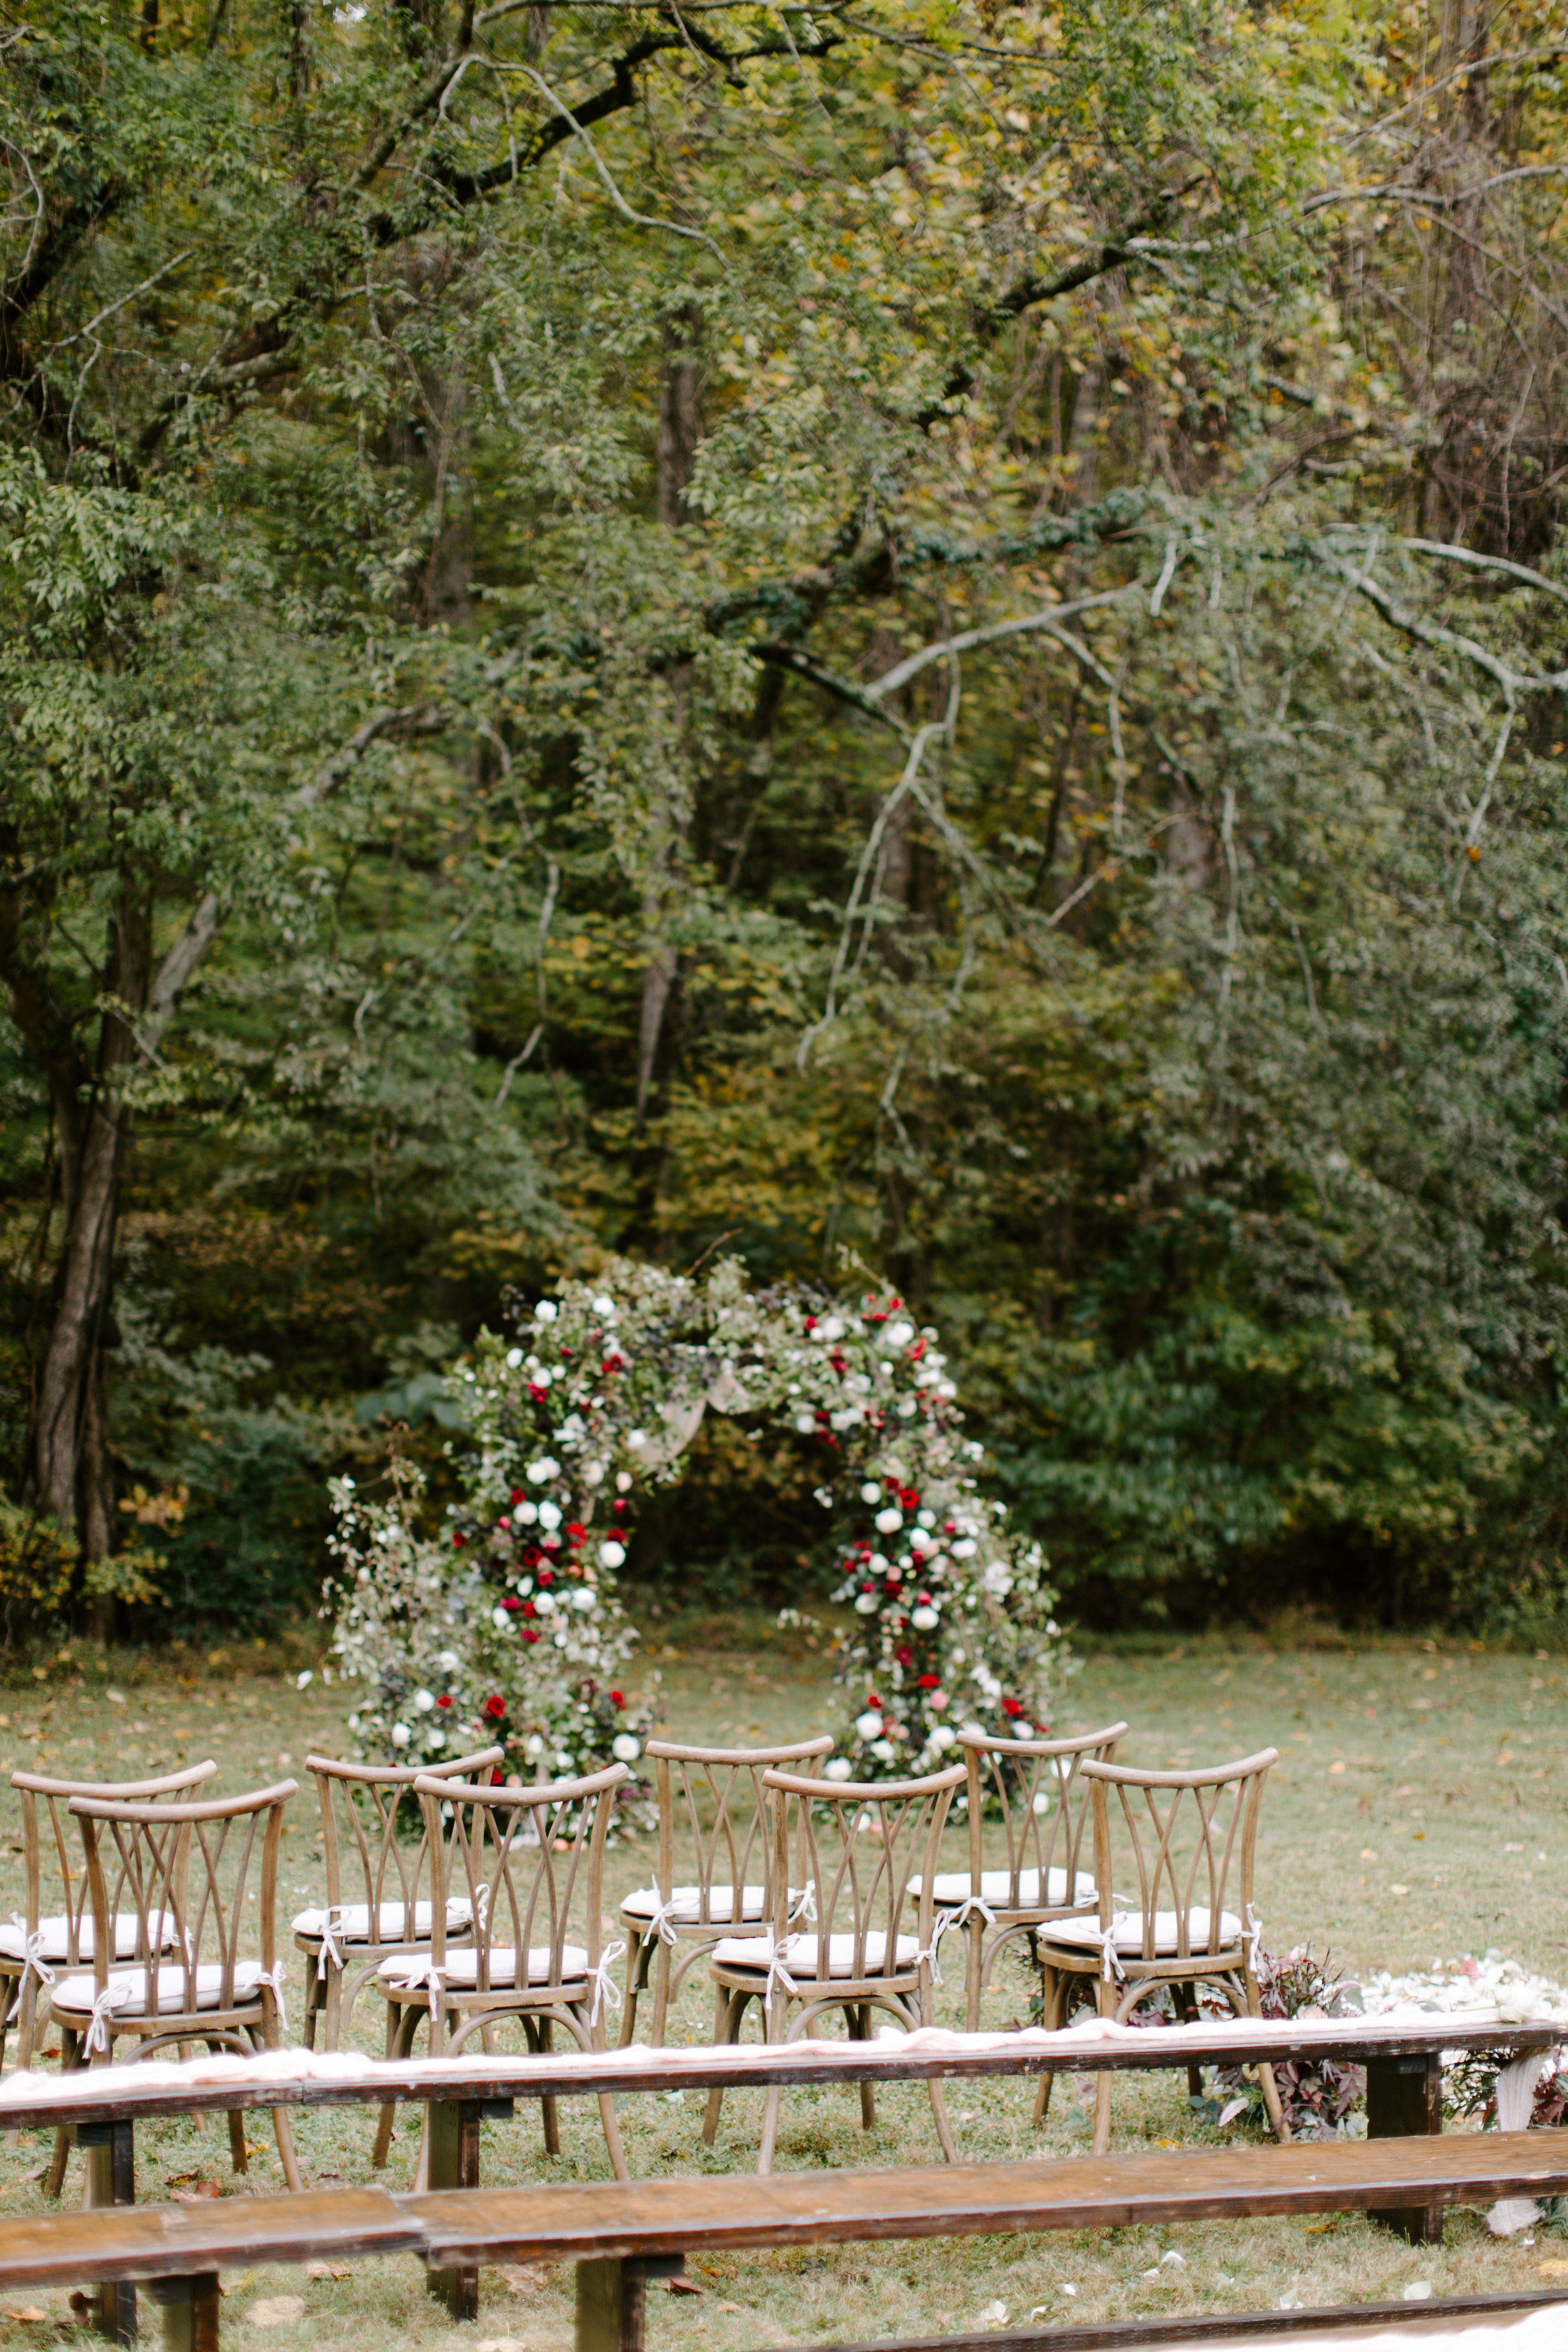 autumn floral arch at a wedding ceremony